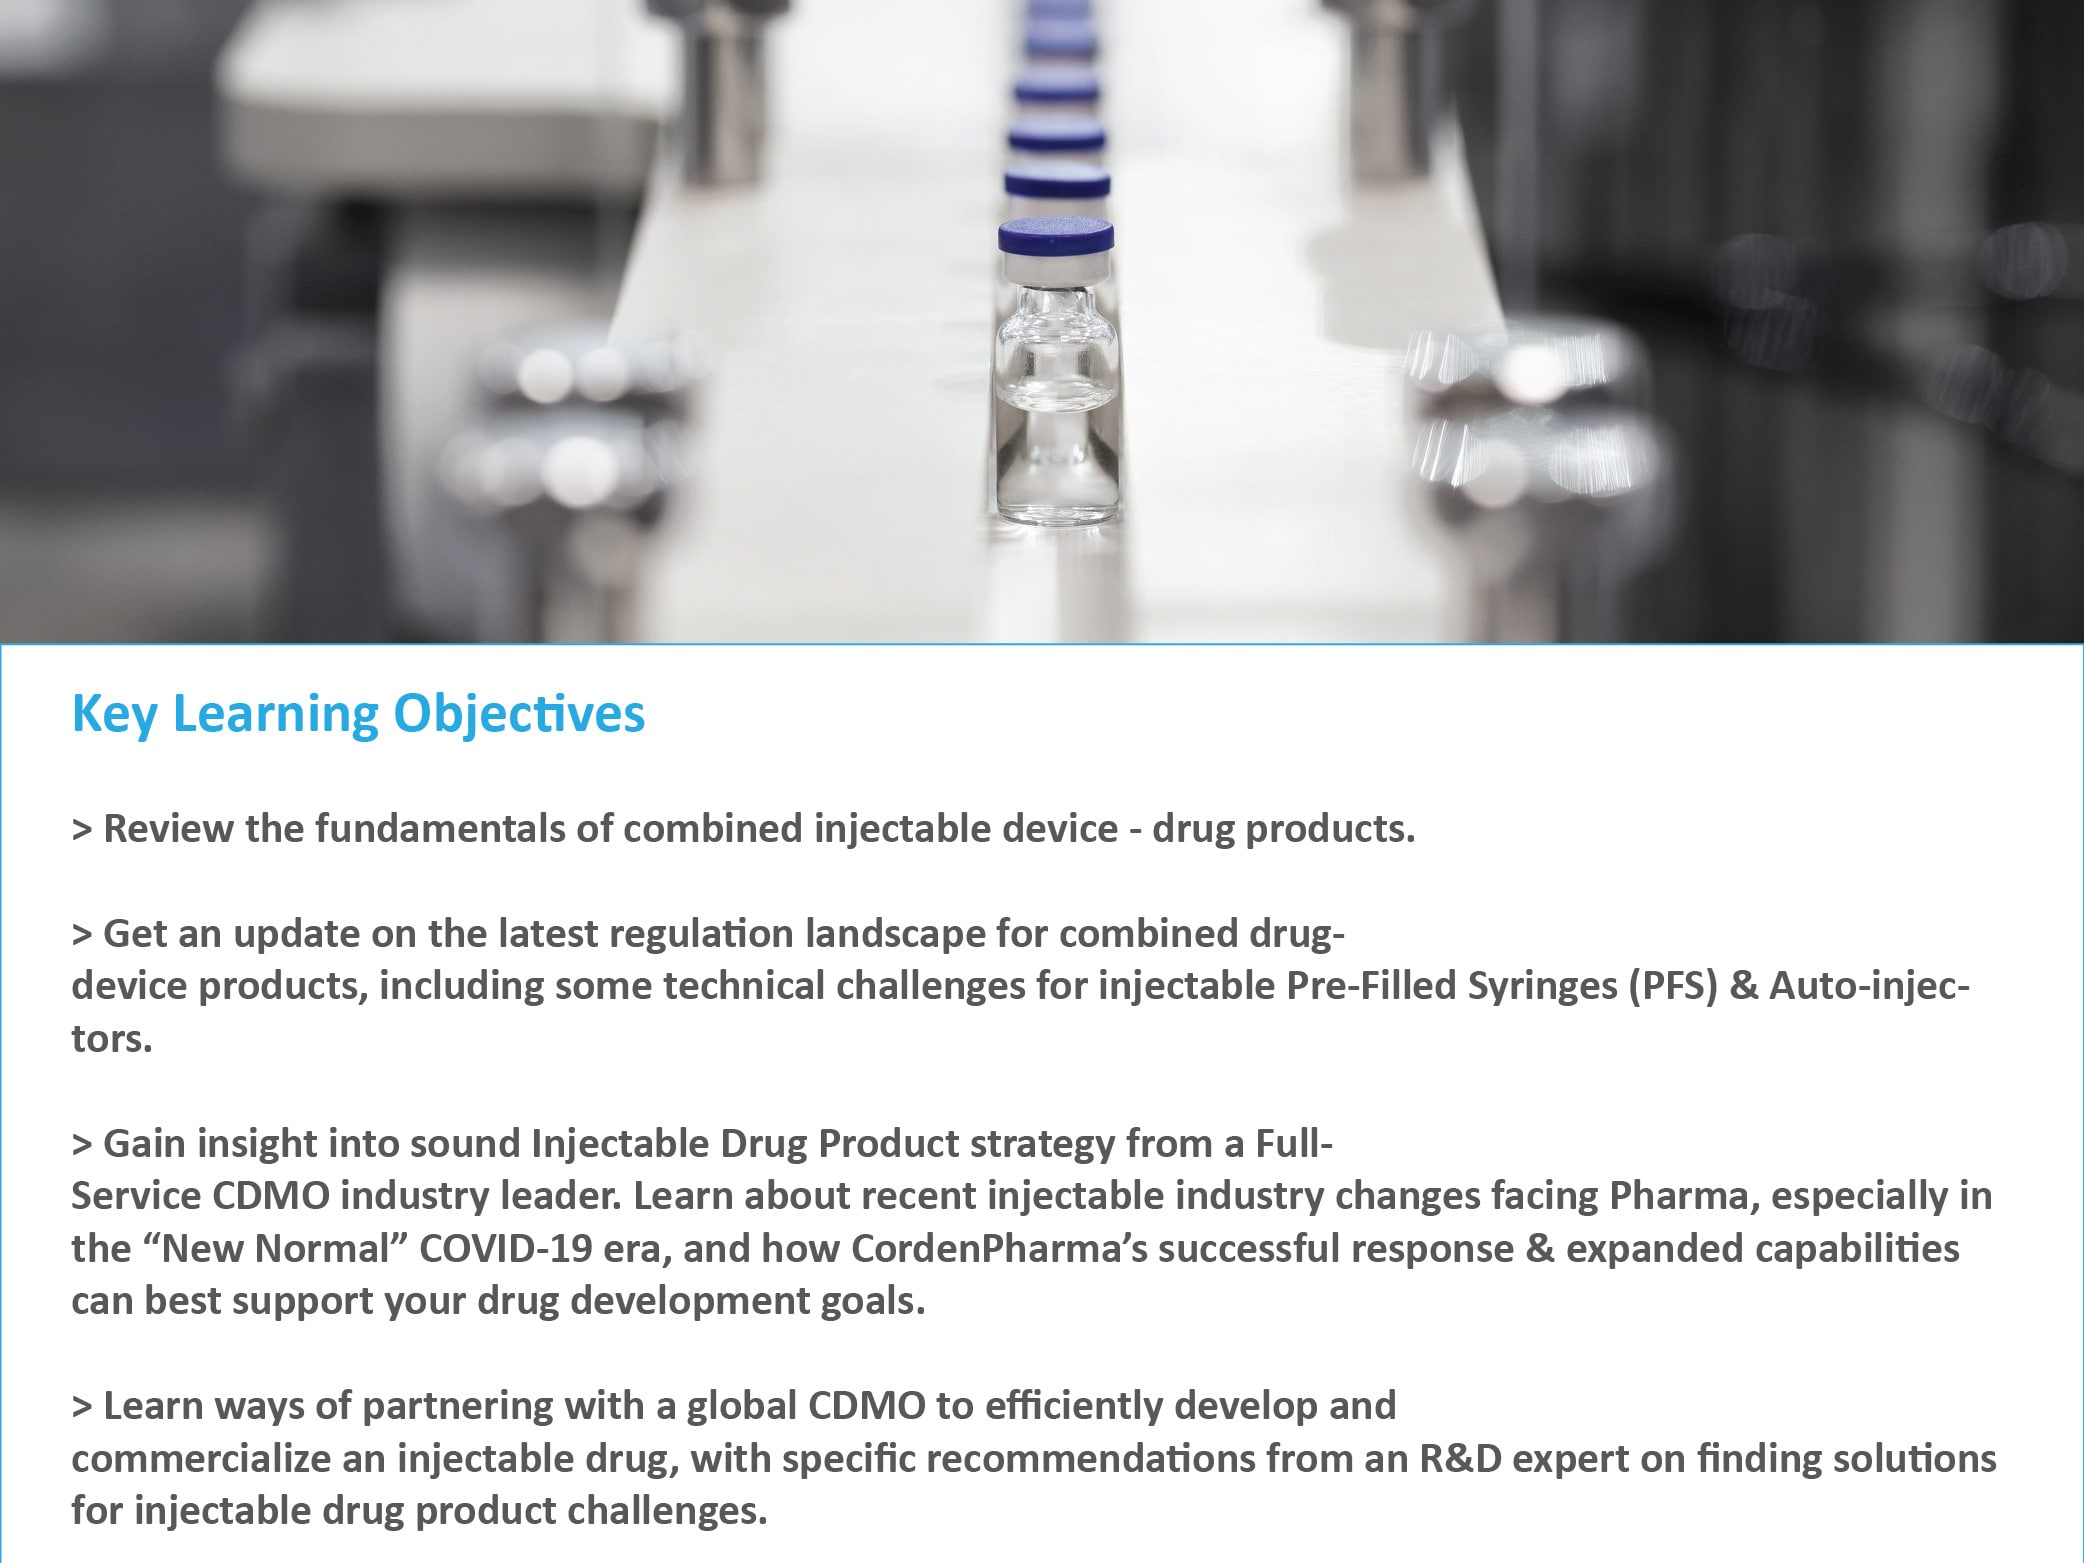 CordenPharma Sterile Injectable Drug Product Manufacturing Video